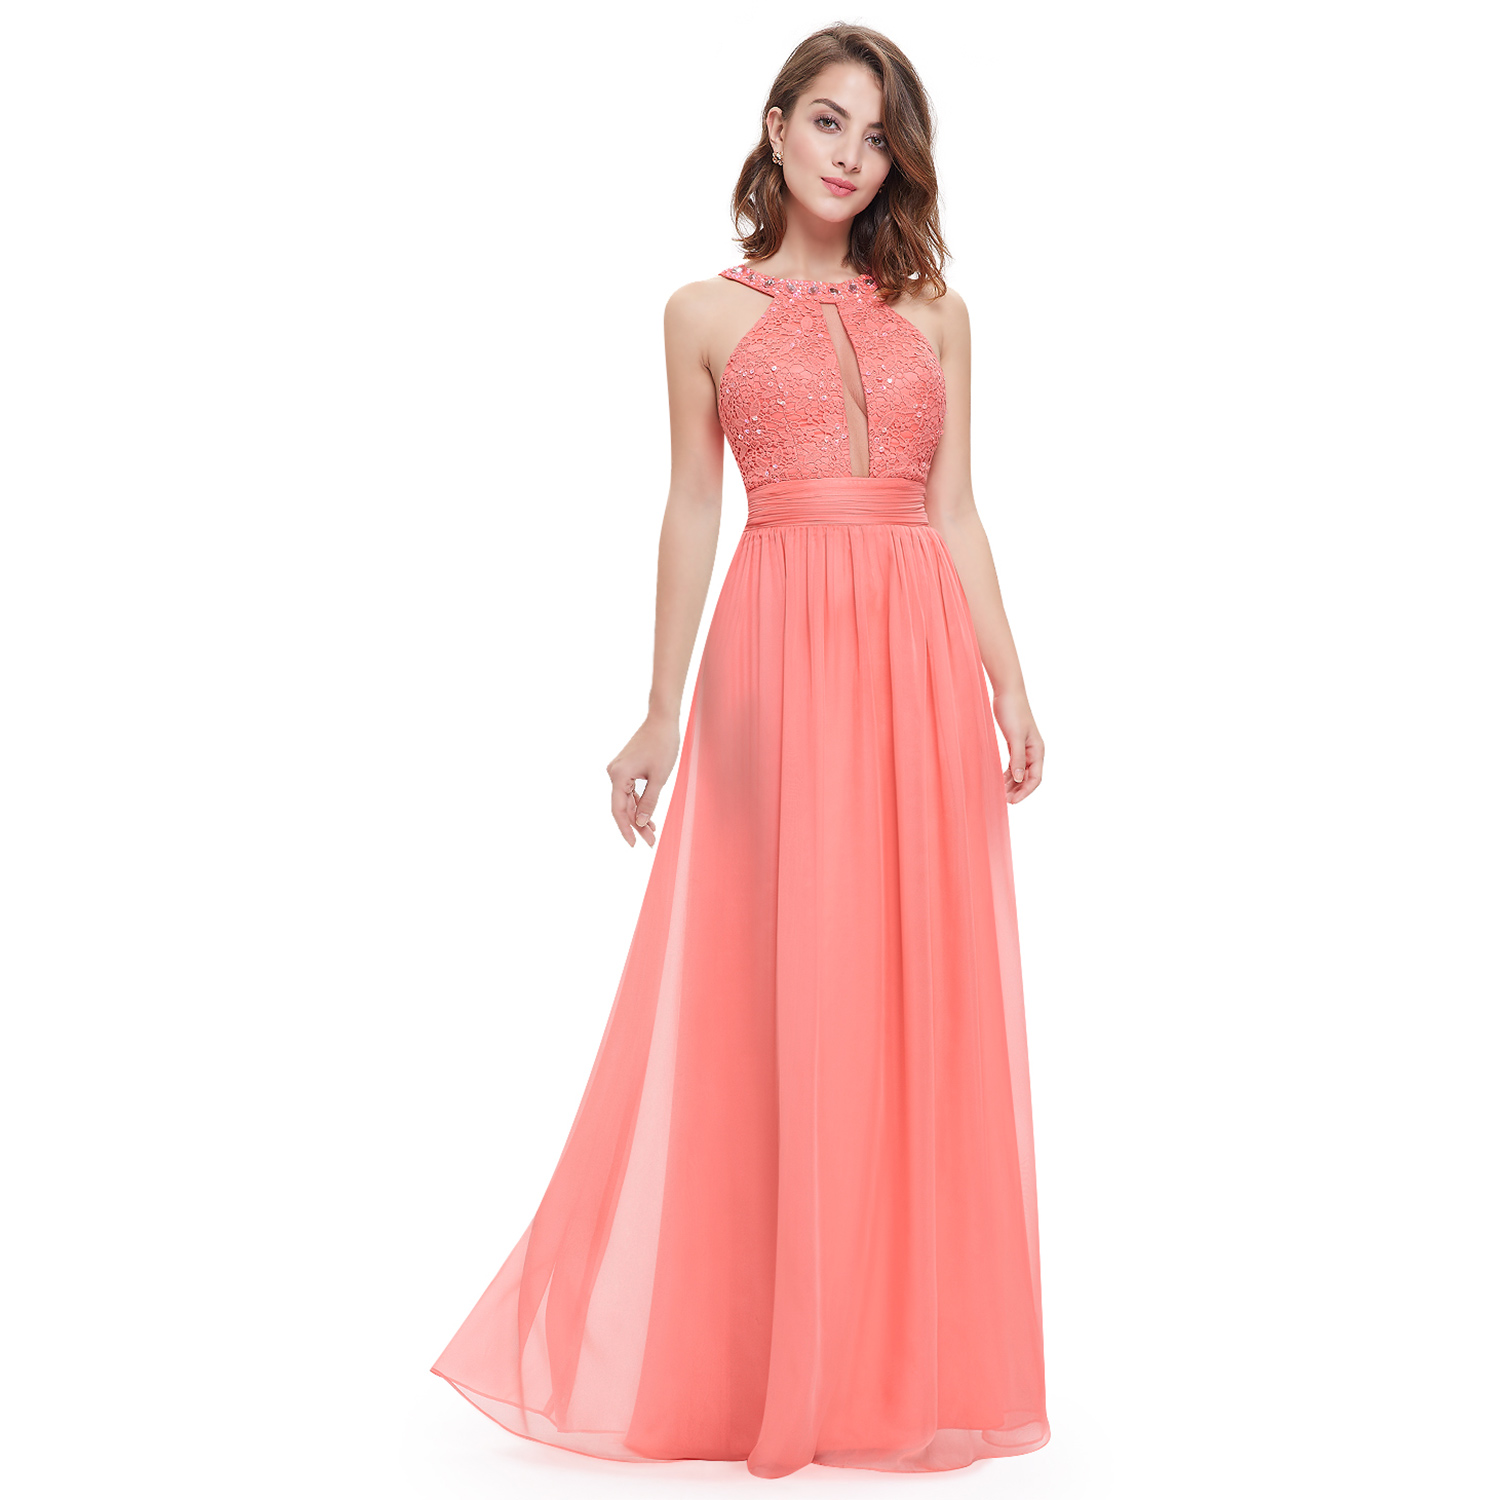 Womens Halter Bridesmaid Dresses Long Homecoming Prom Gown 08572 ...